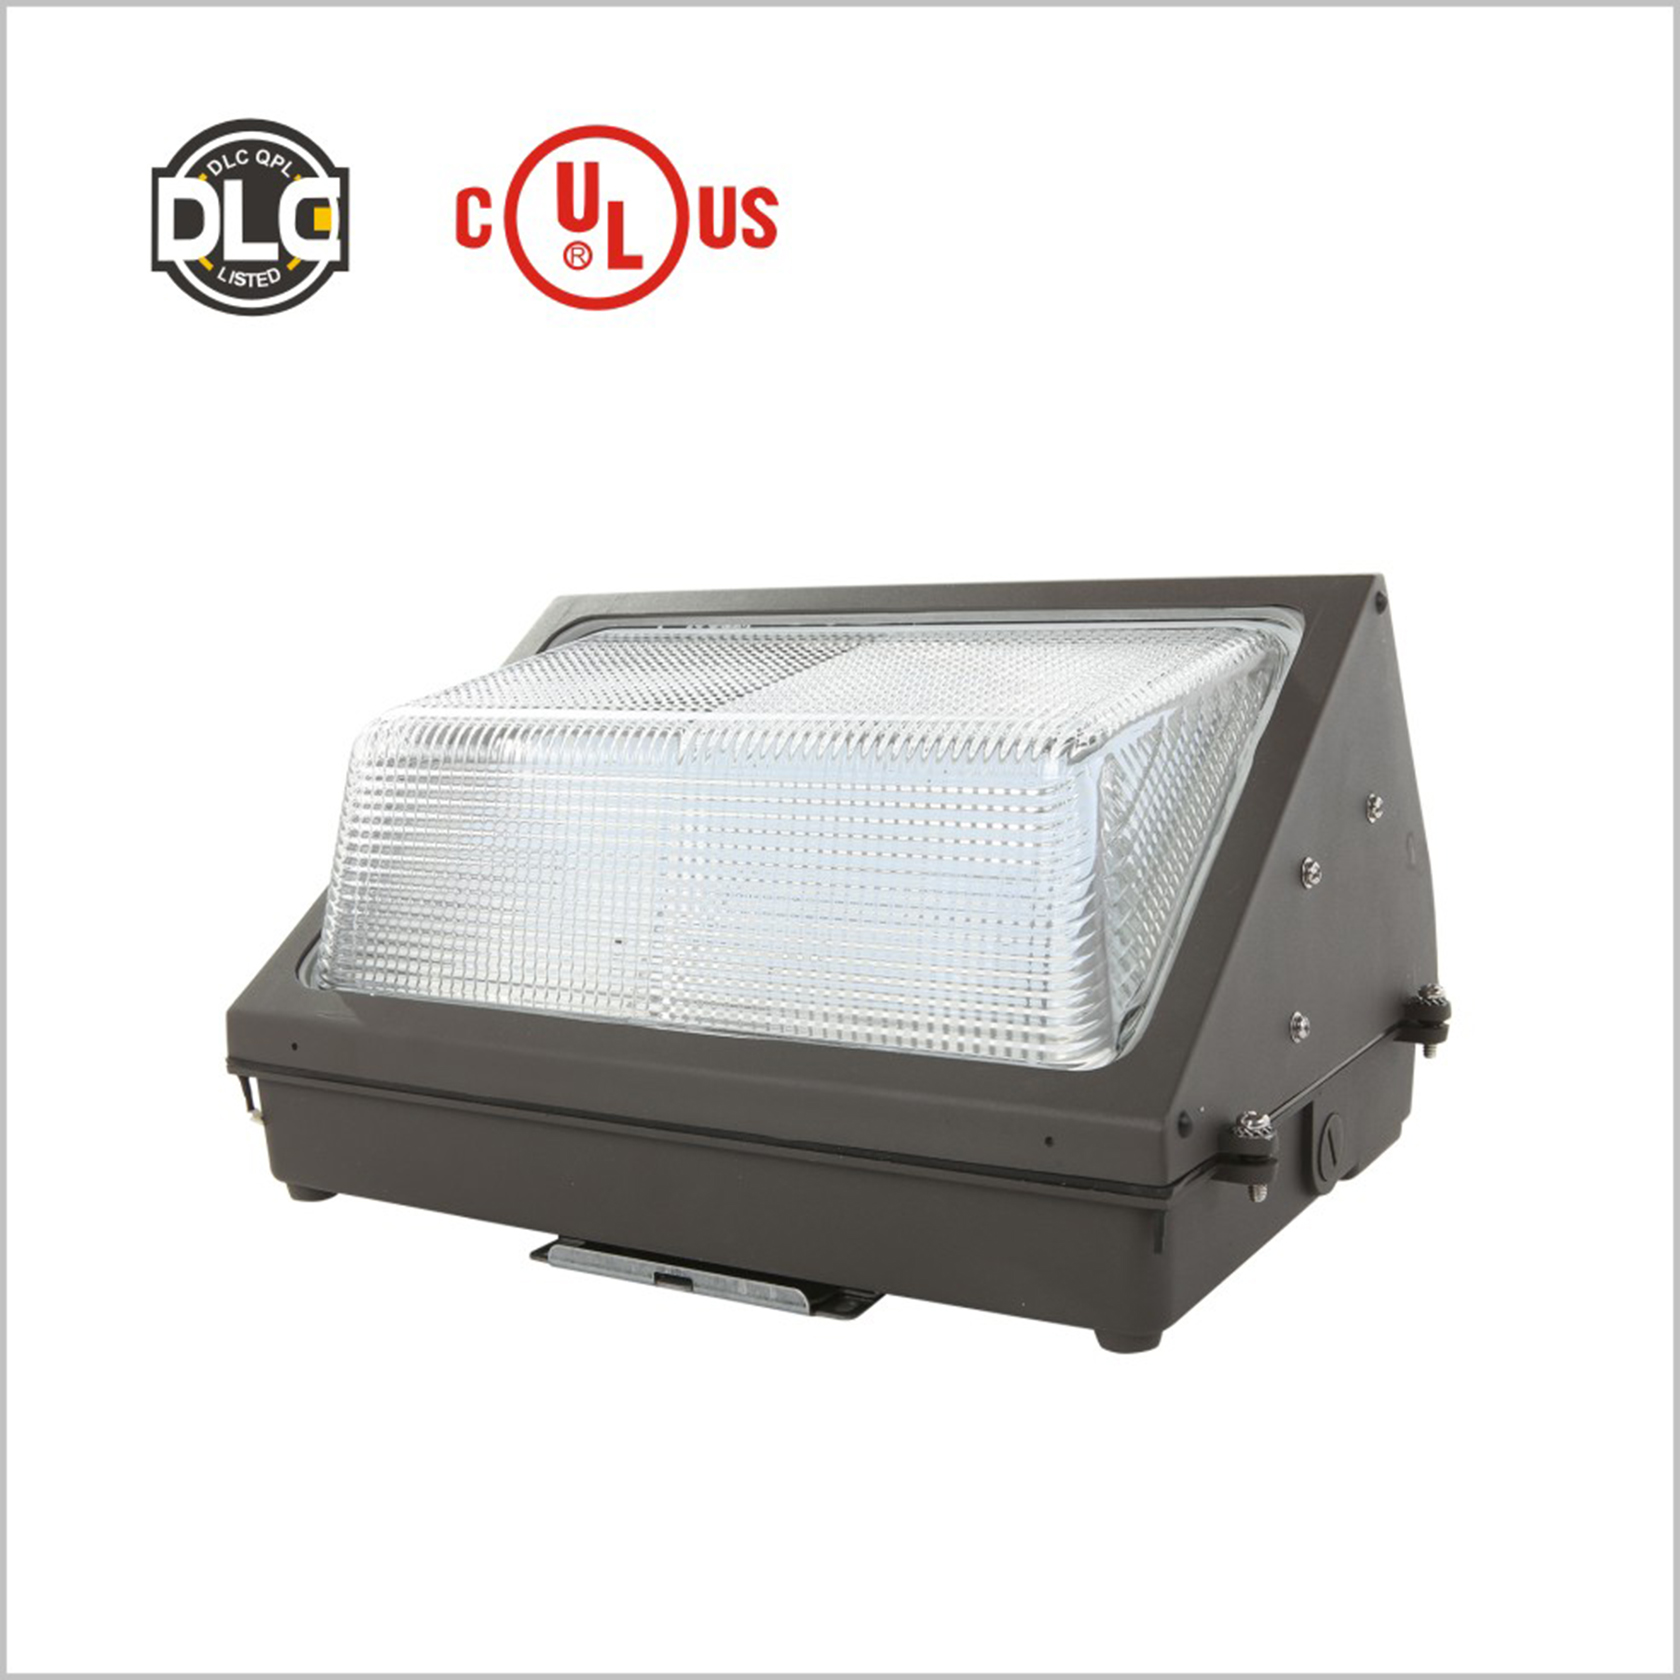 120w 5000k led outdoor wall pack light fixture ul dlc approved 5 120w 5000k led outdoor wall pack light fixture ul dlc approved 5 years warranty aloadofball Image collections